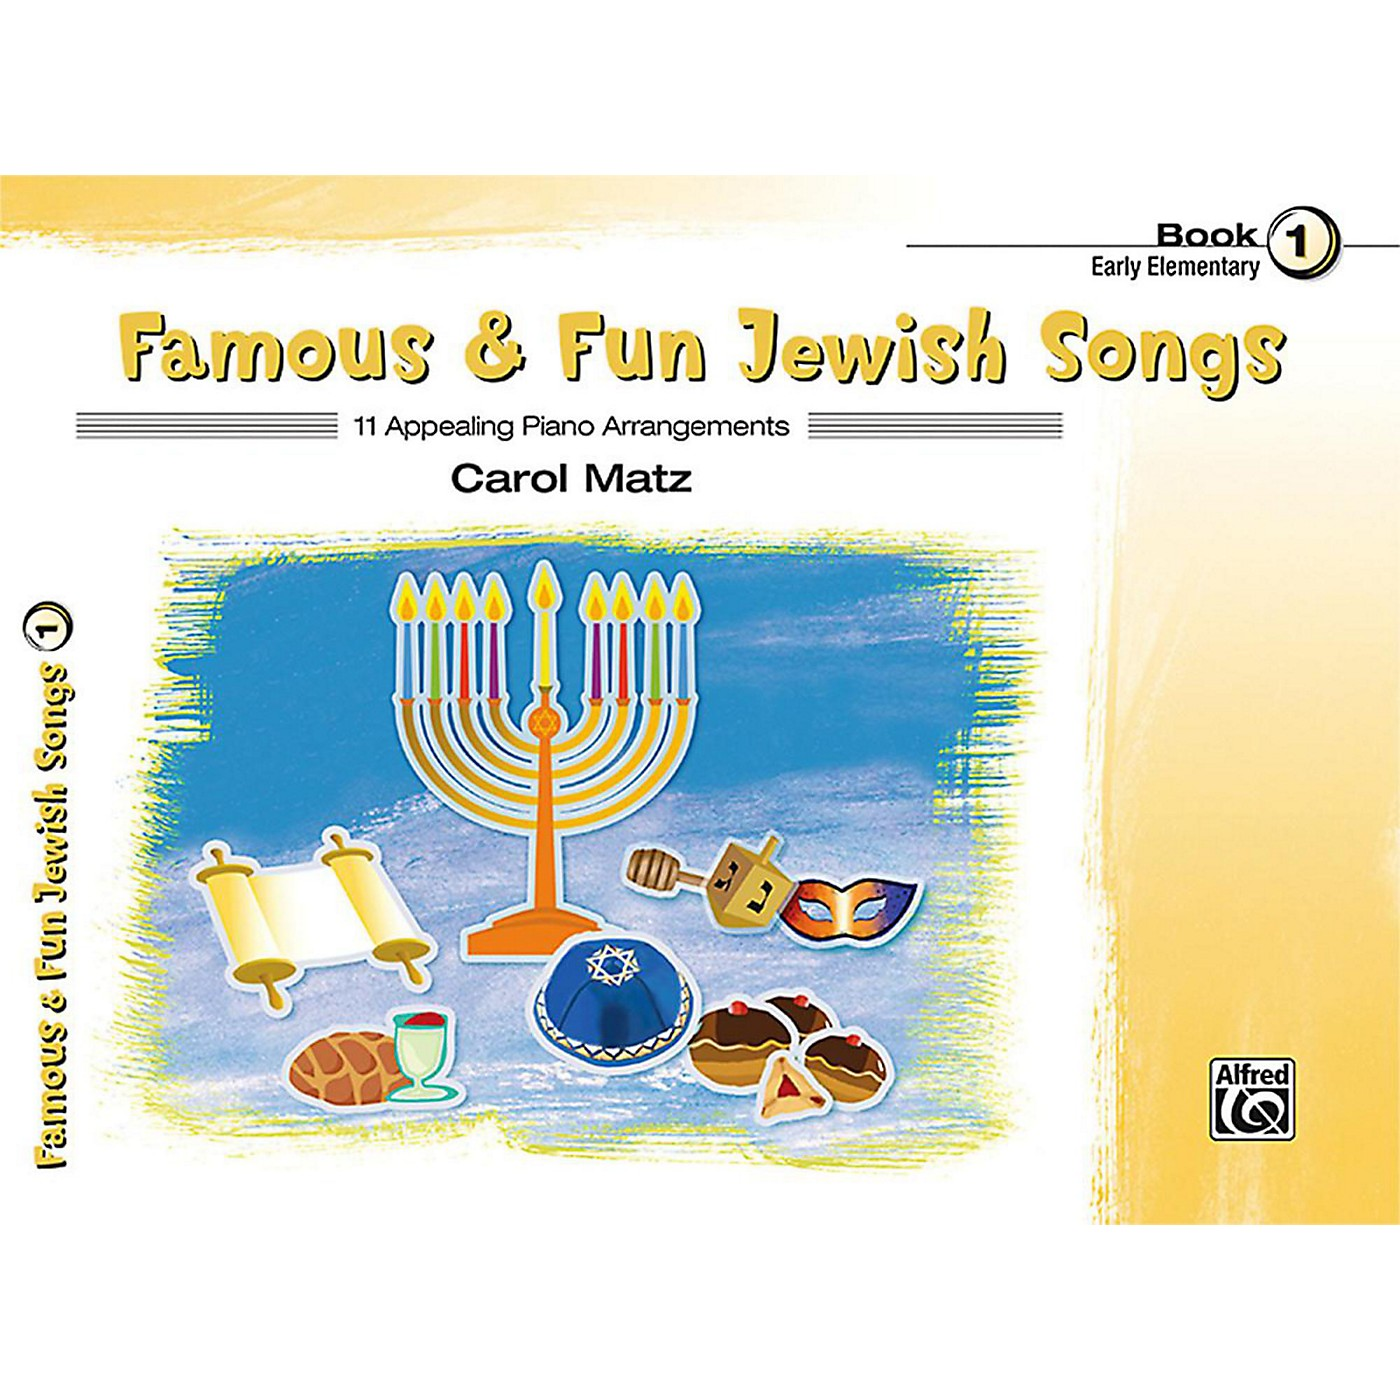 Alfred Famous & Fun Jewish Songs, Book 1 Early Elementary thumbnail